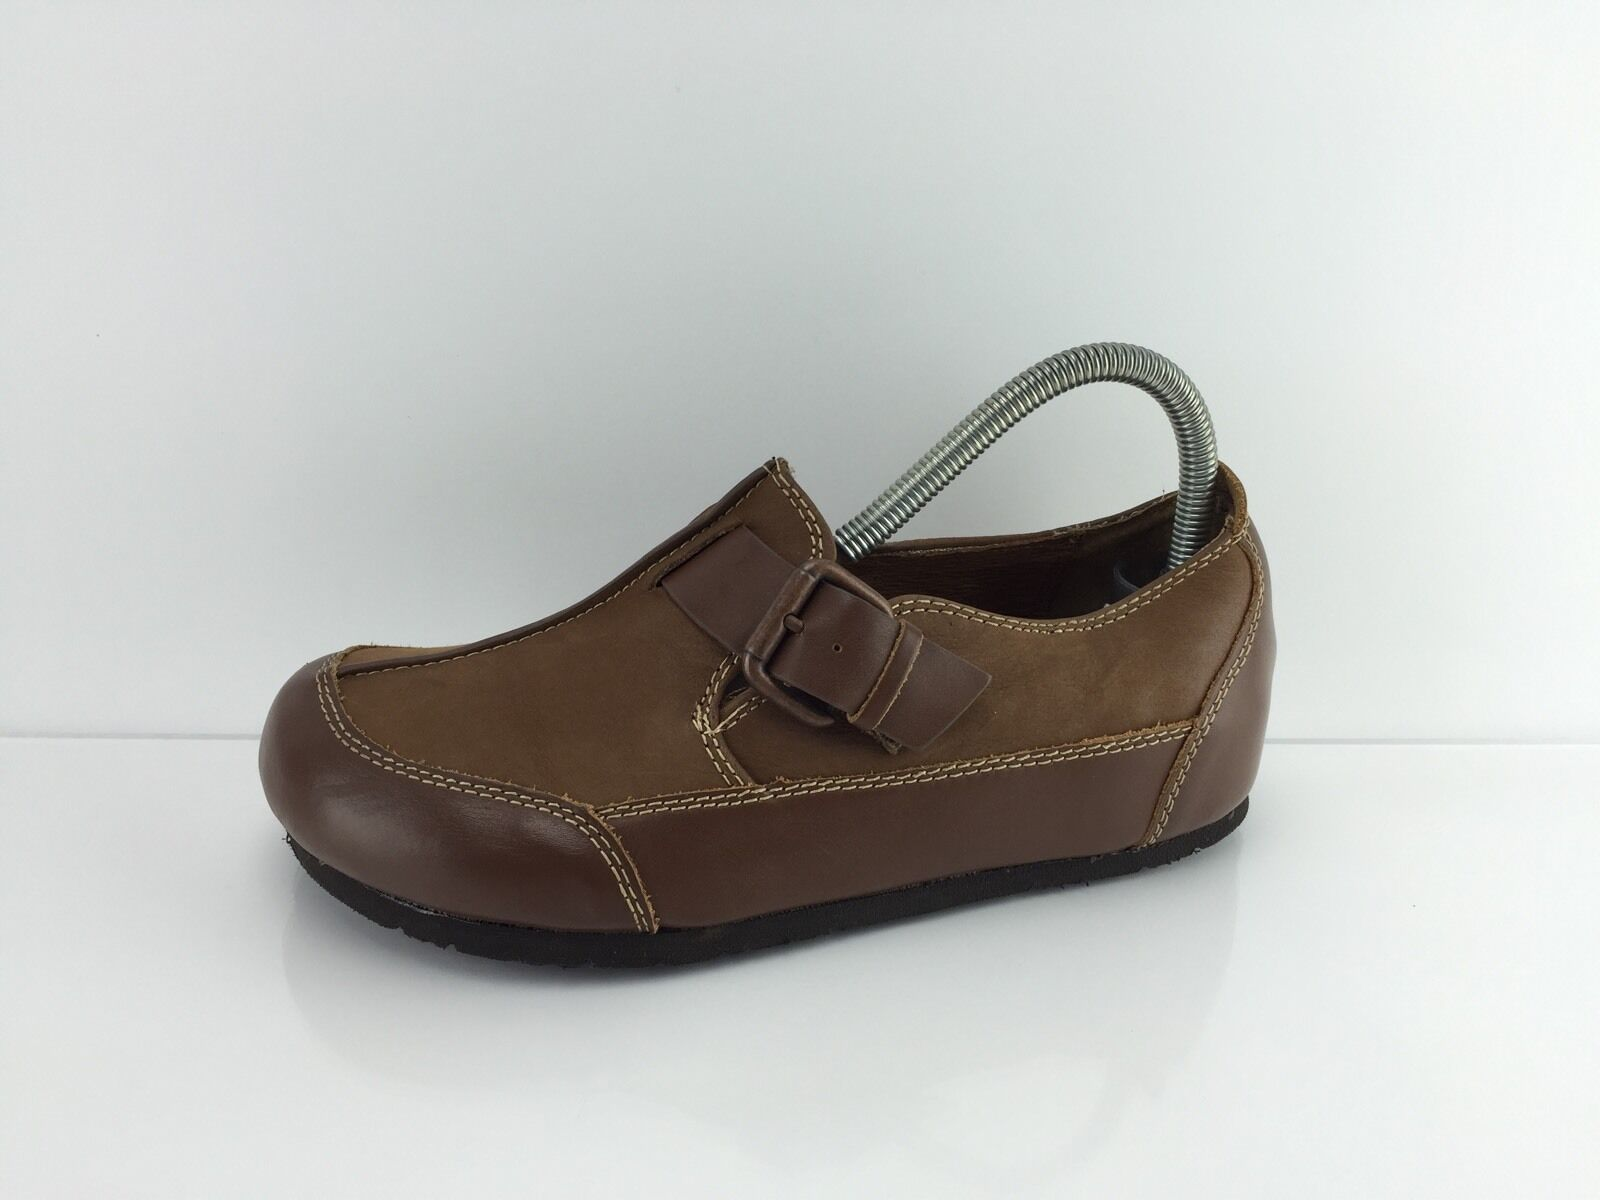 Sofft Women's Brown Leather shoes 7.5 M